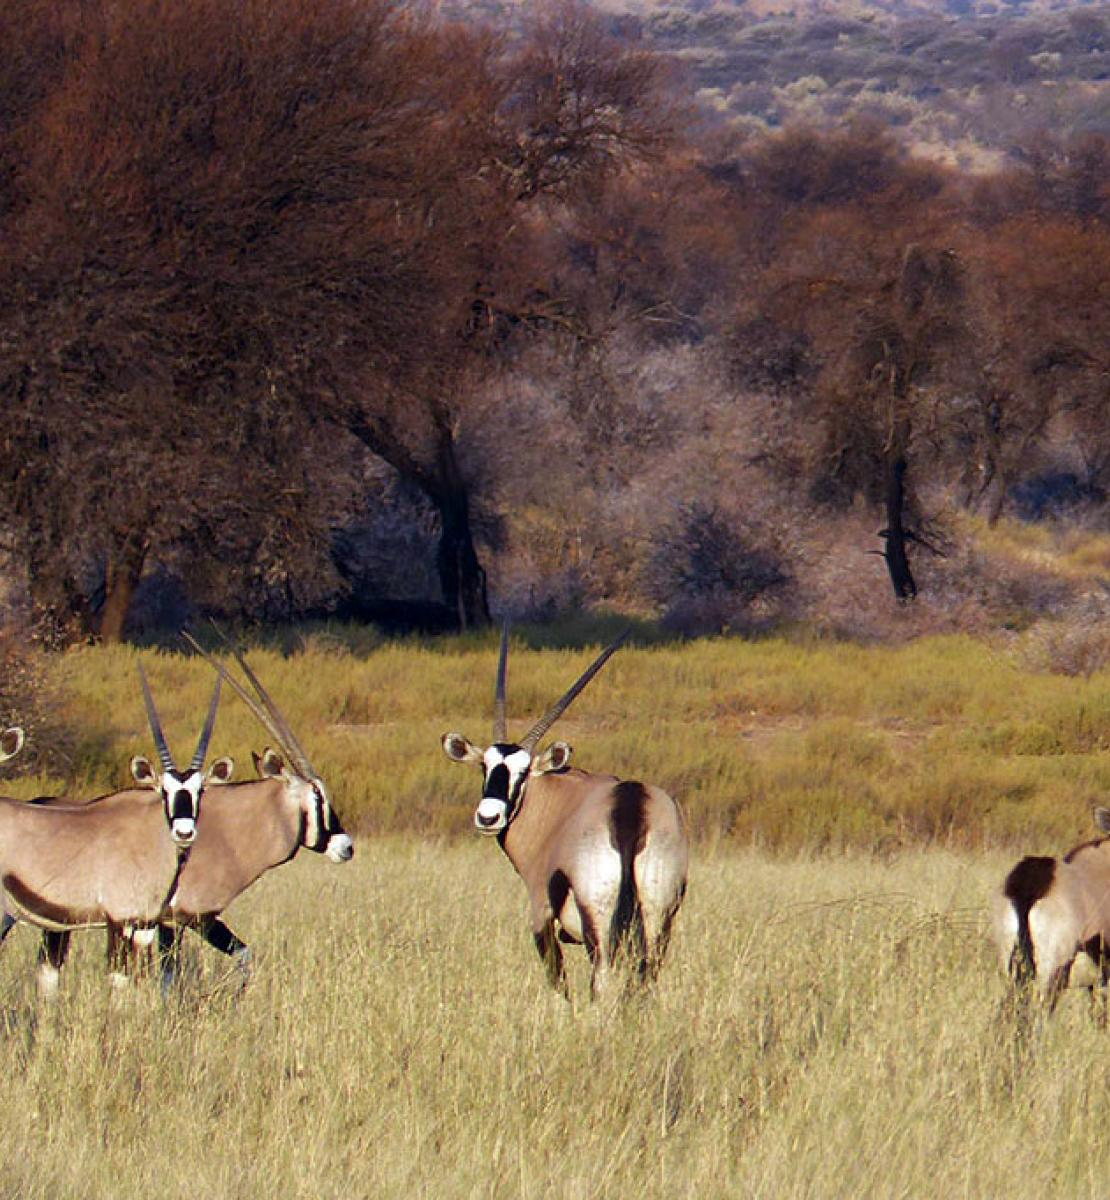 Six Gemsbok stand in a field at a conservancy in Namibia.